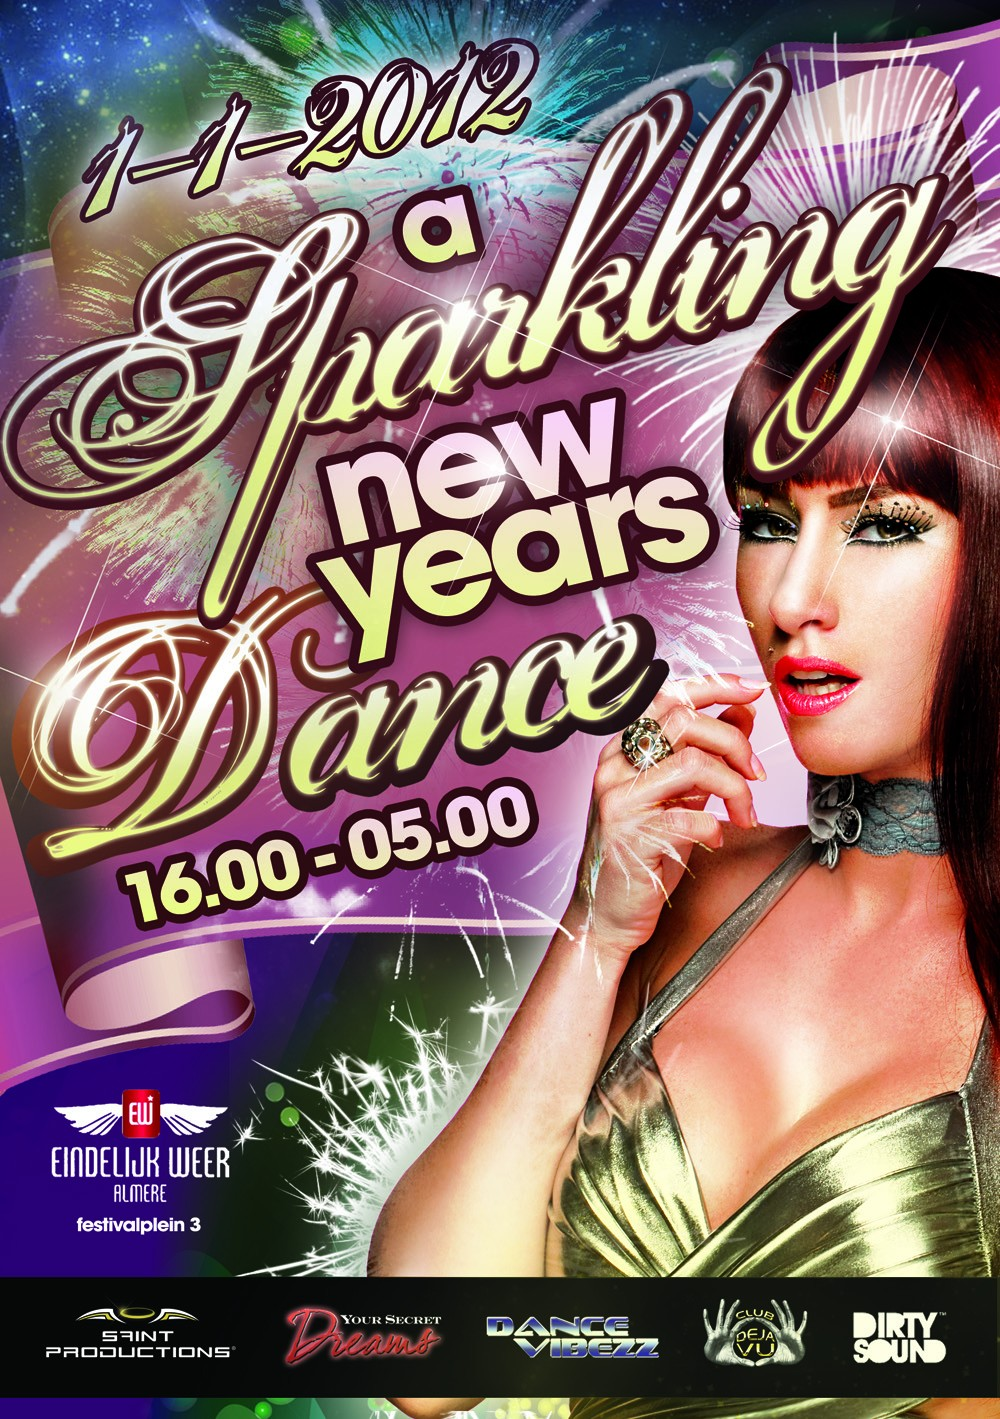 Sparkling New Year S Eve Nails Tutorial: A Sparkling New Years Dance · 1 Januari 2012, Eindelijk